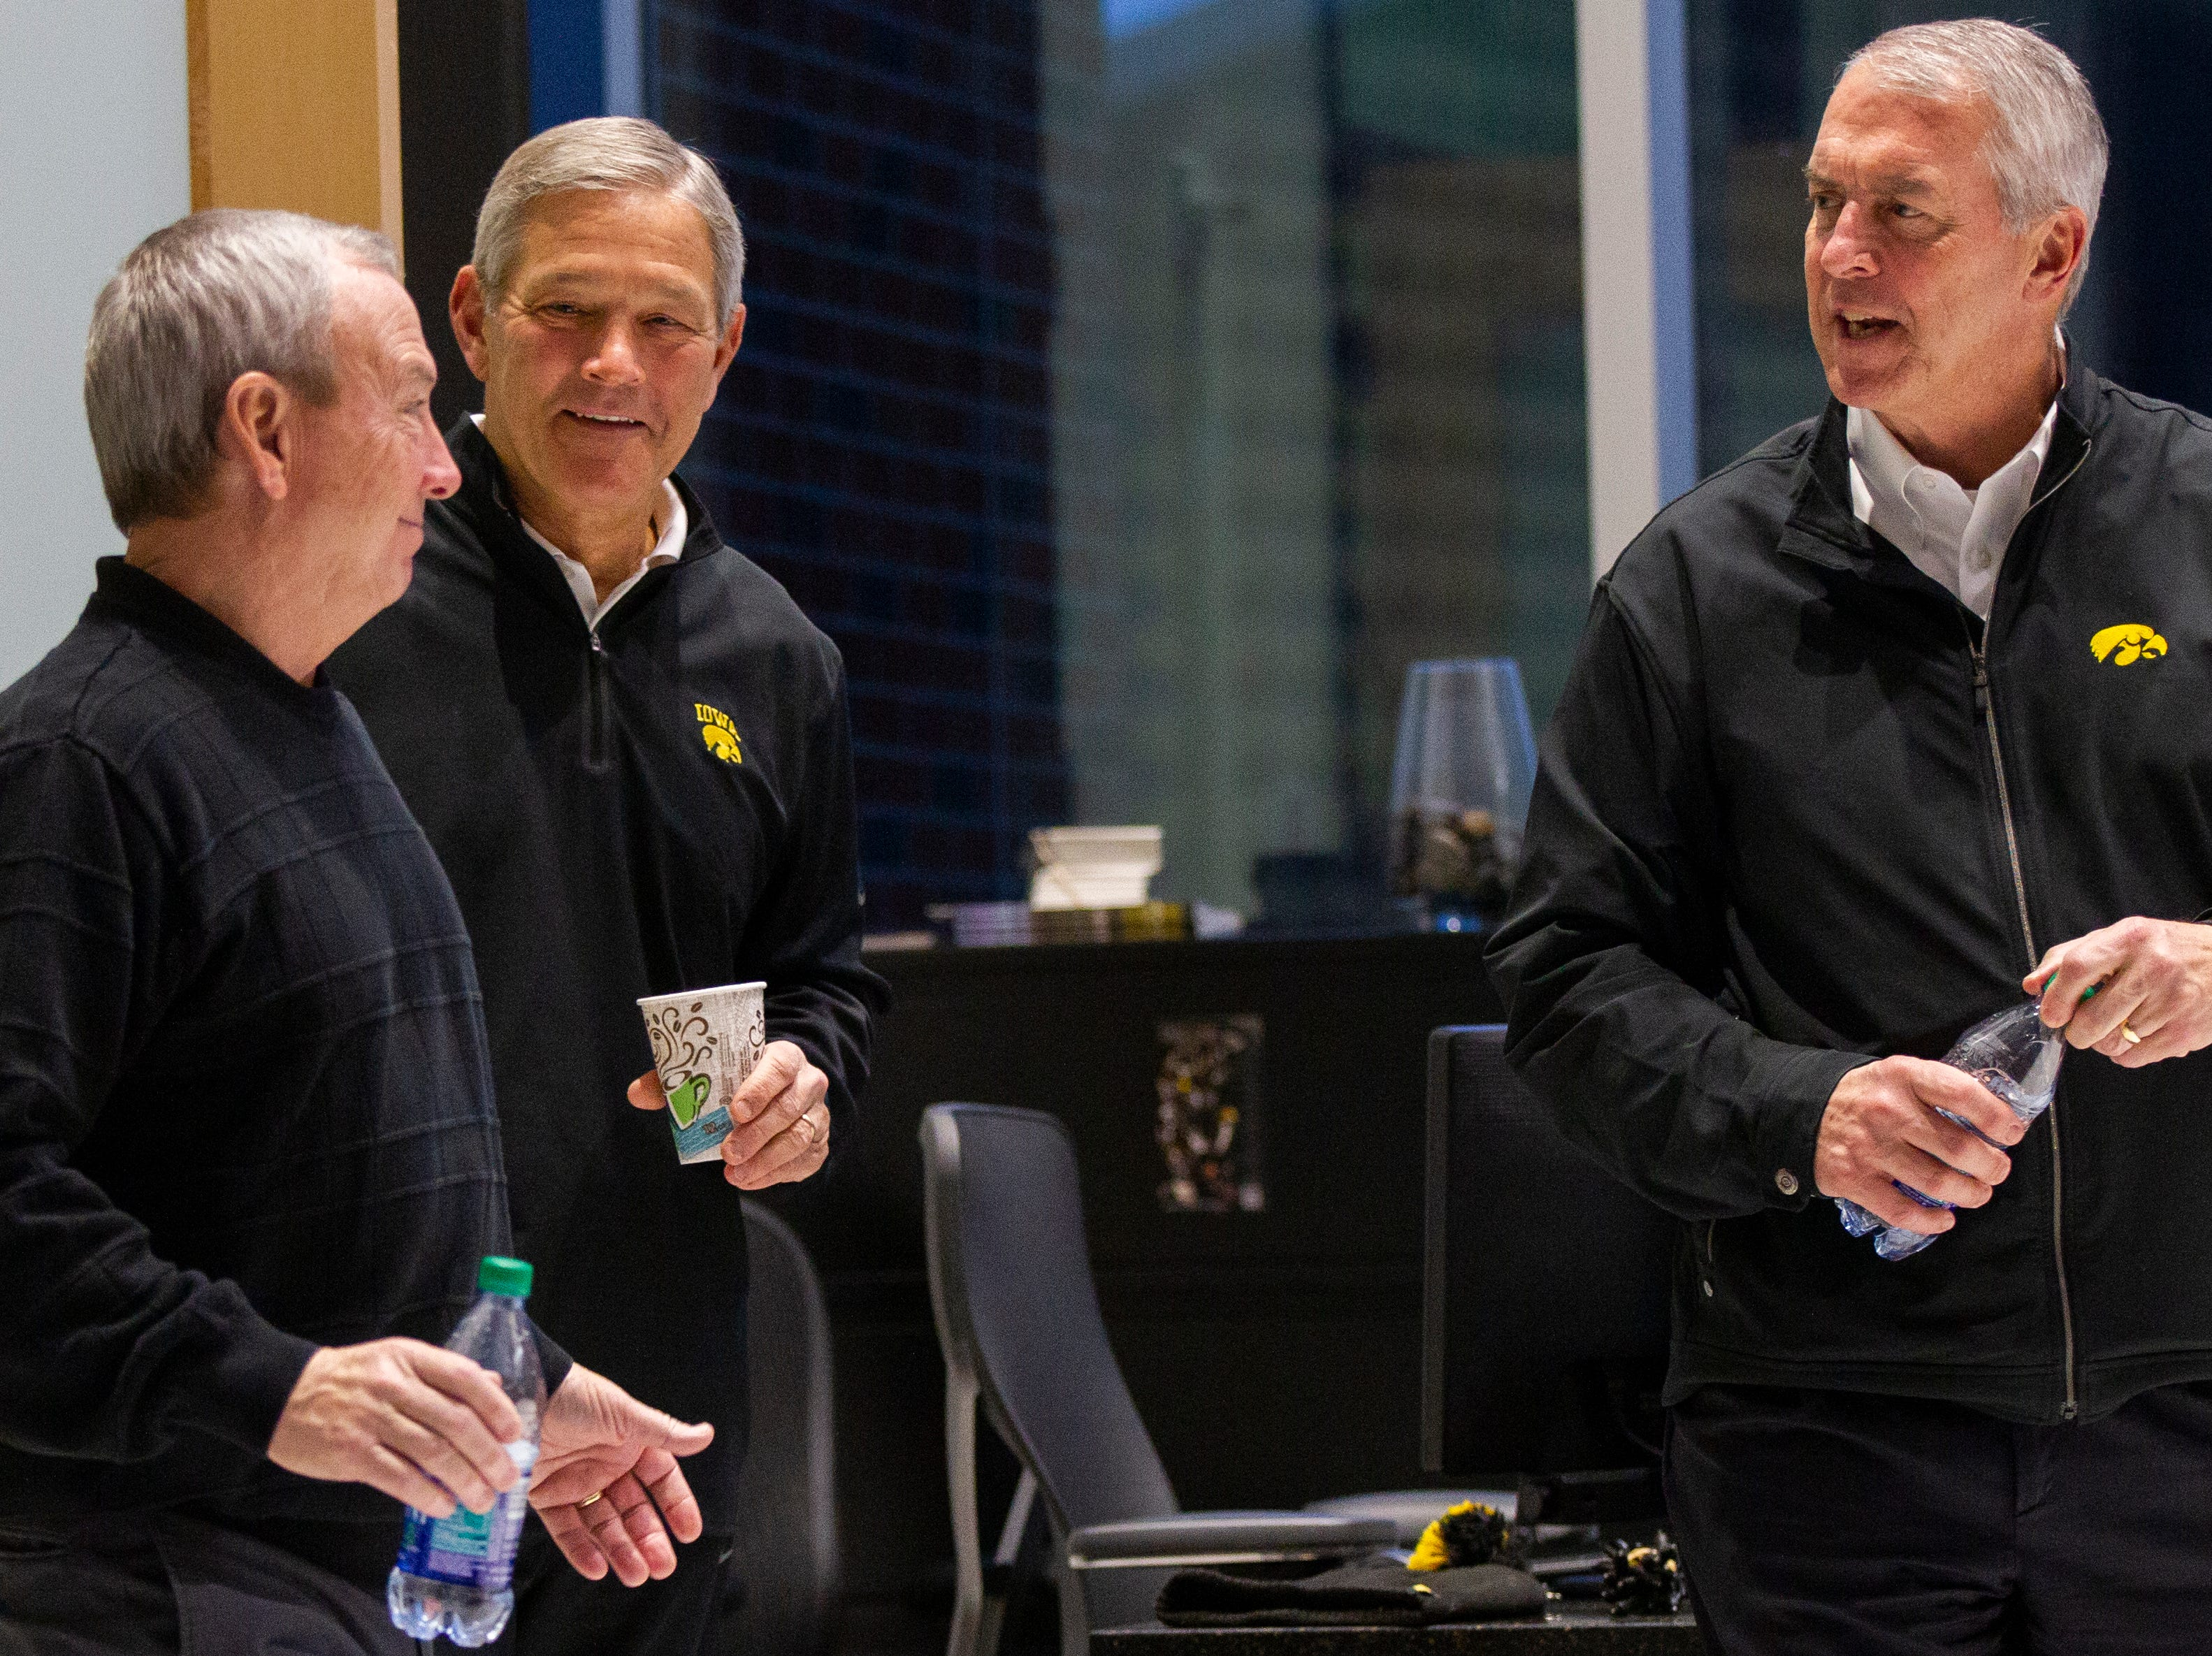 Iowa football head coach Kirk Ferentz and athletic director Gary Barta talk with assistant athletic director Steve Roe (far left) before an Outback Bowl announcement press conference on Sunday, Dec. 2, 2018, at the Hansen Football Performance Center in Iowa City.